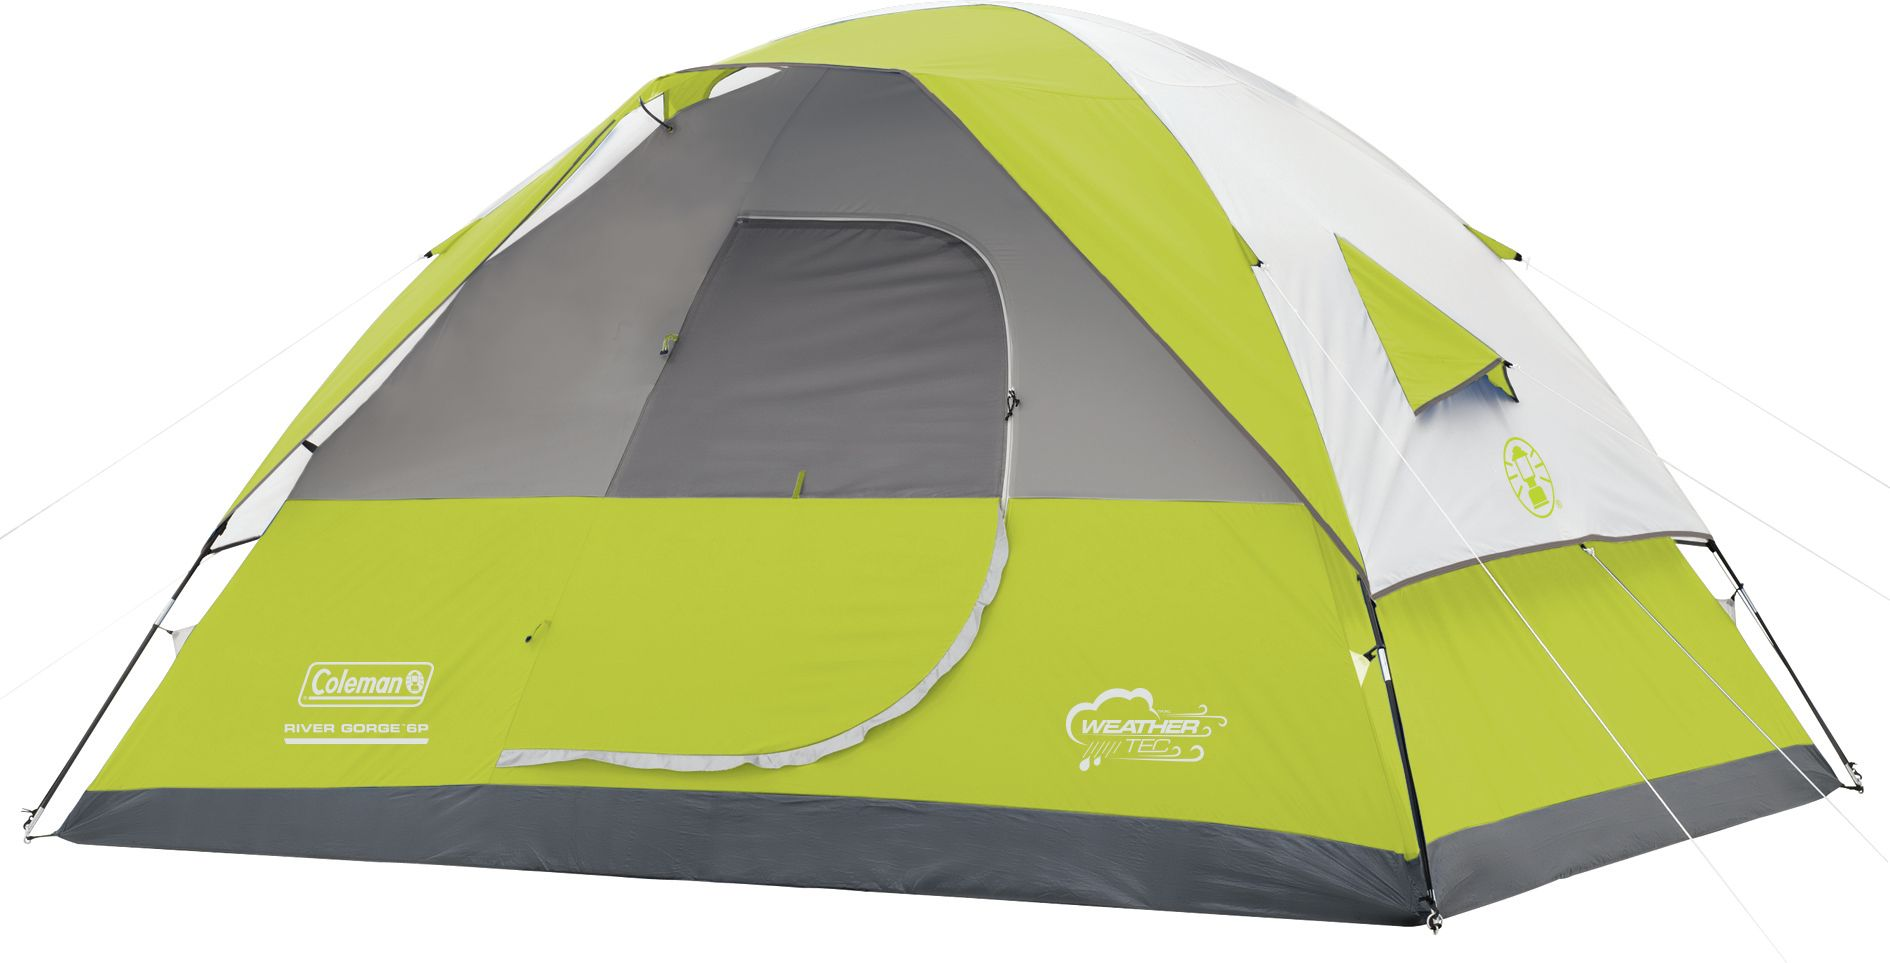 Coleman River Gorge 6 Person Dome Tent -- $64.00 at Dick's Sporting Goods online deal